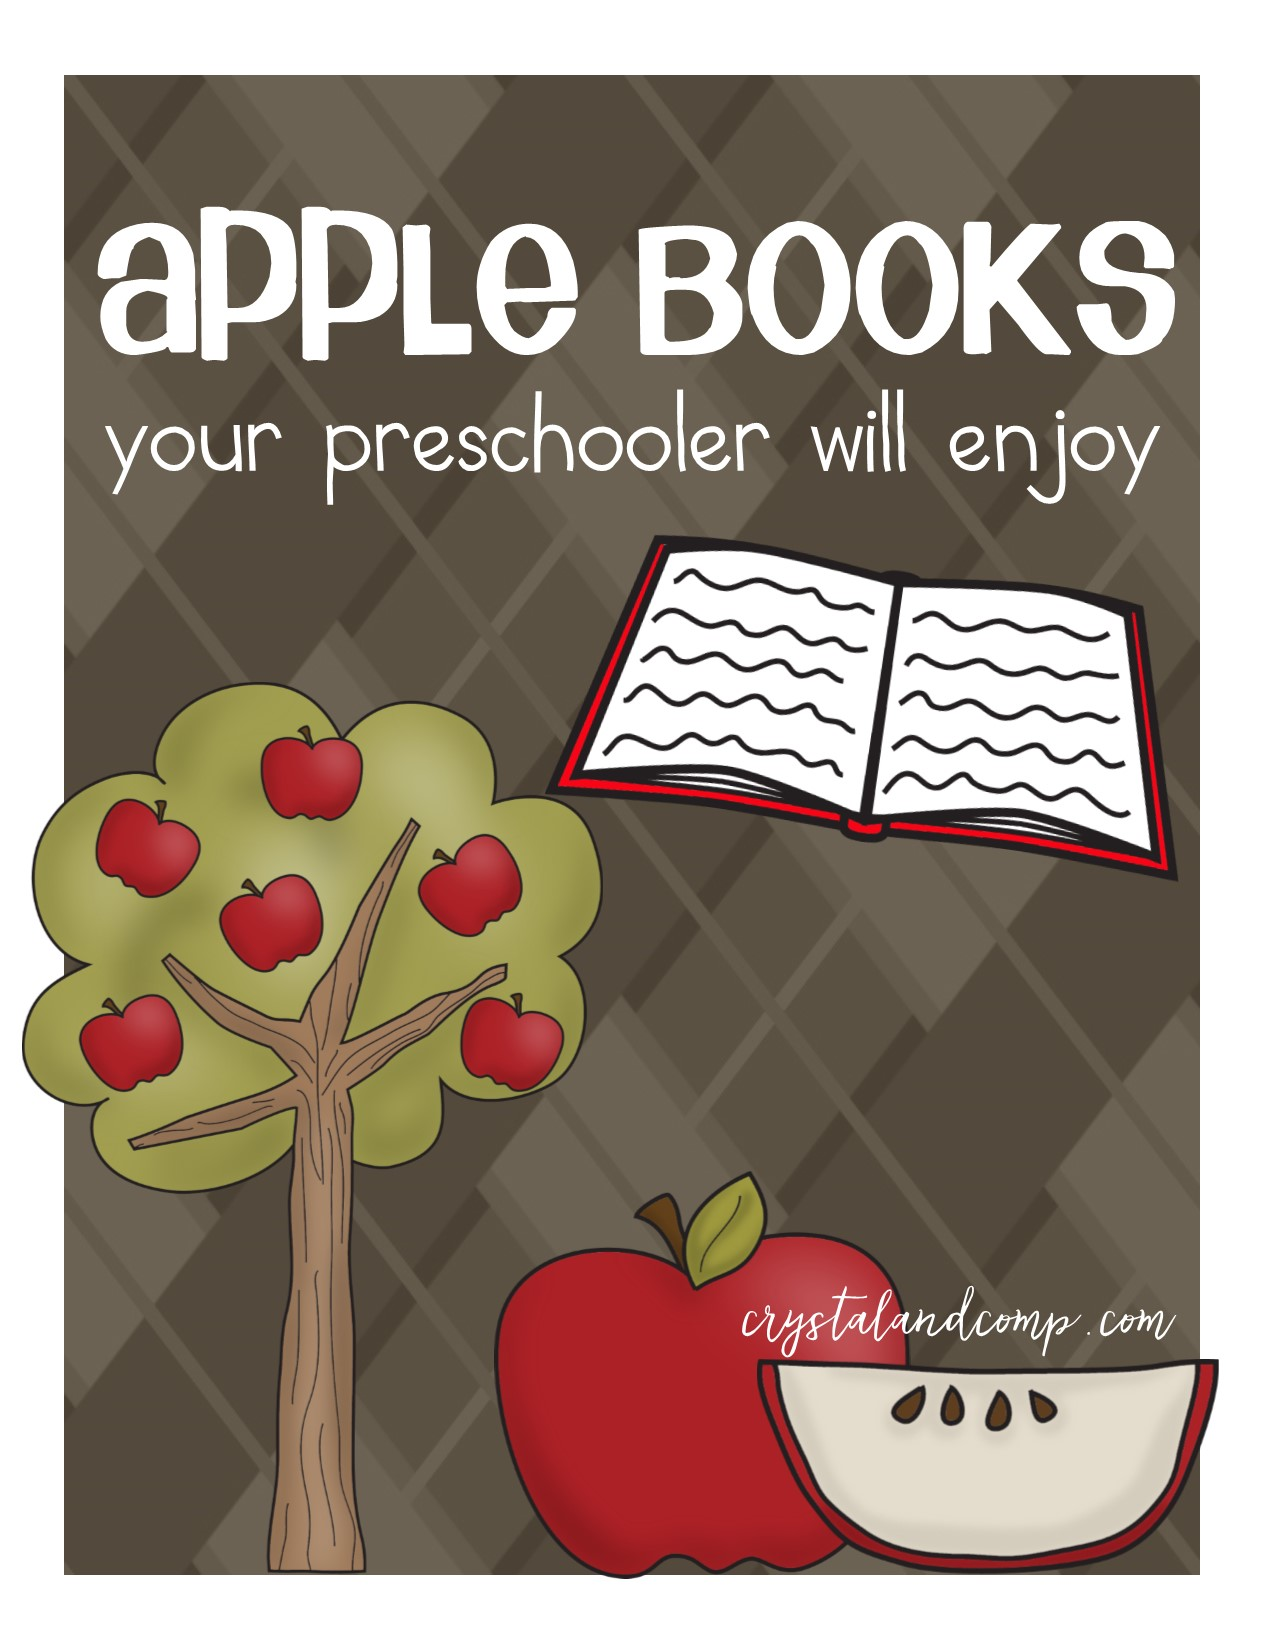 21 Amazing Apple Books For Preschoolers